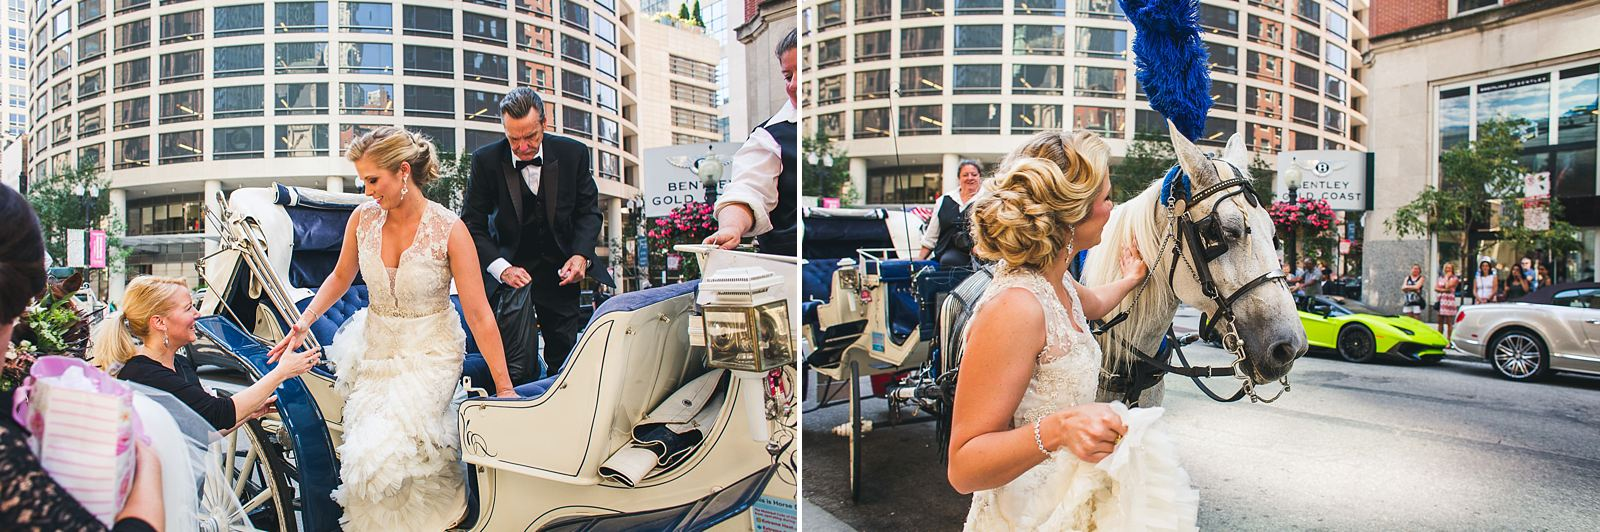 22 bride stepping out of carriage - Chicago Drake Hotel Wedding // Corie + Jordan